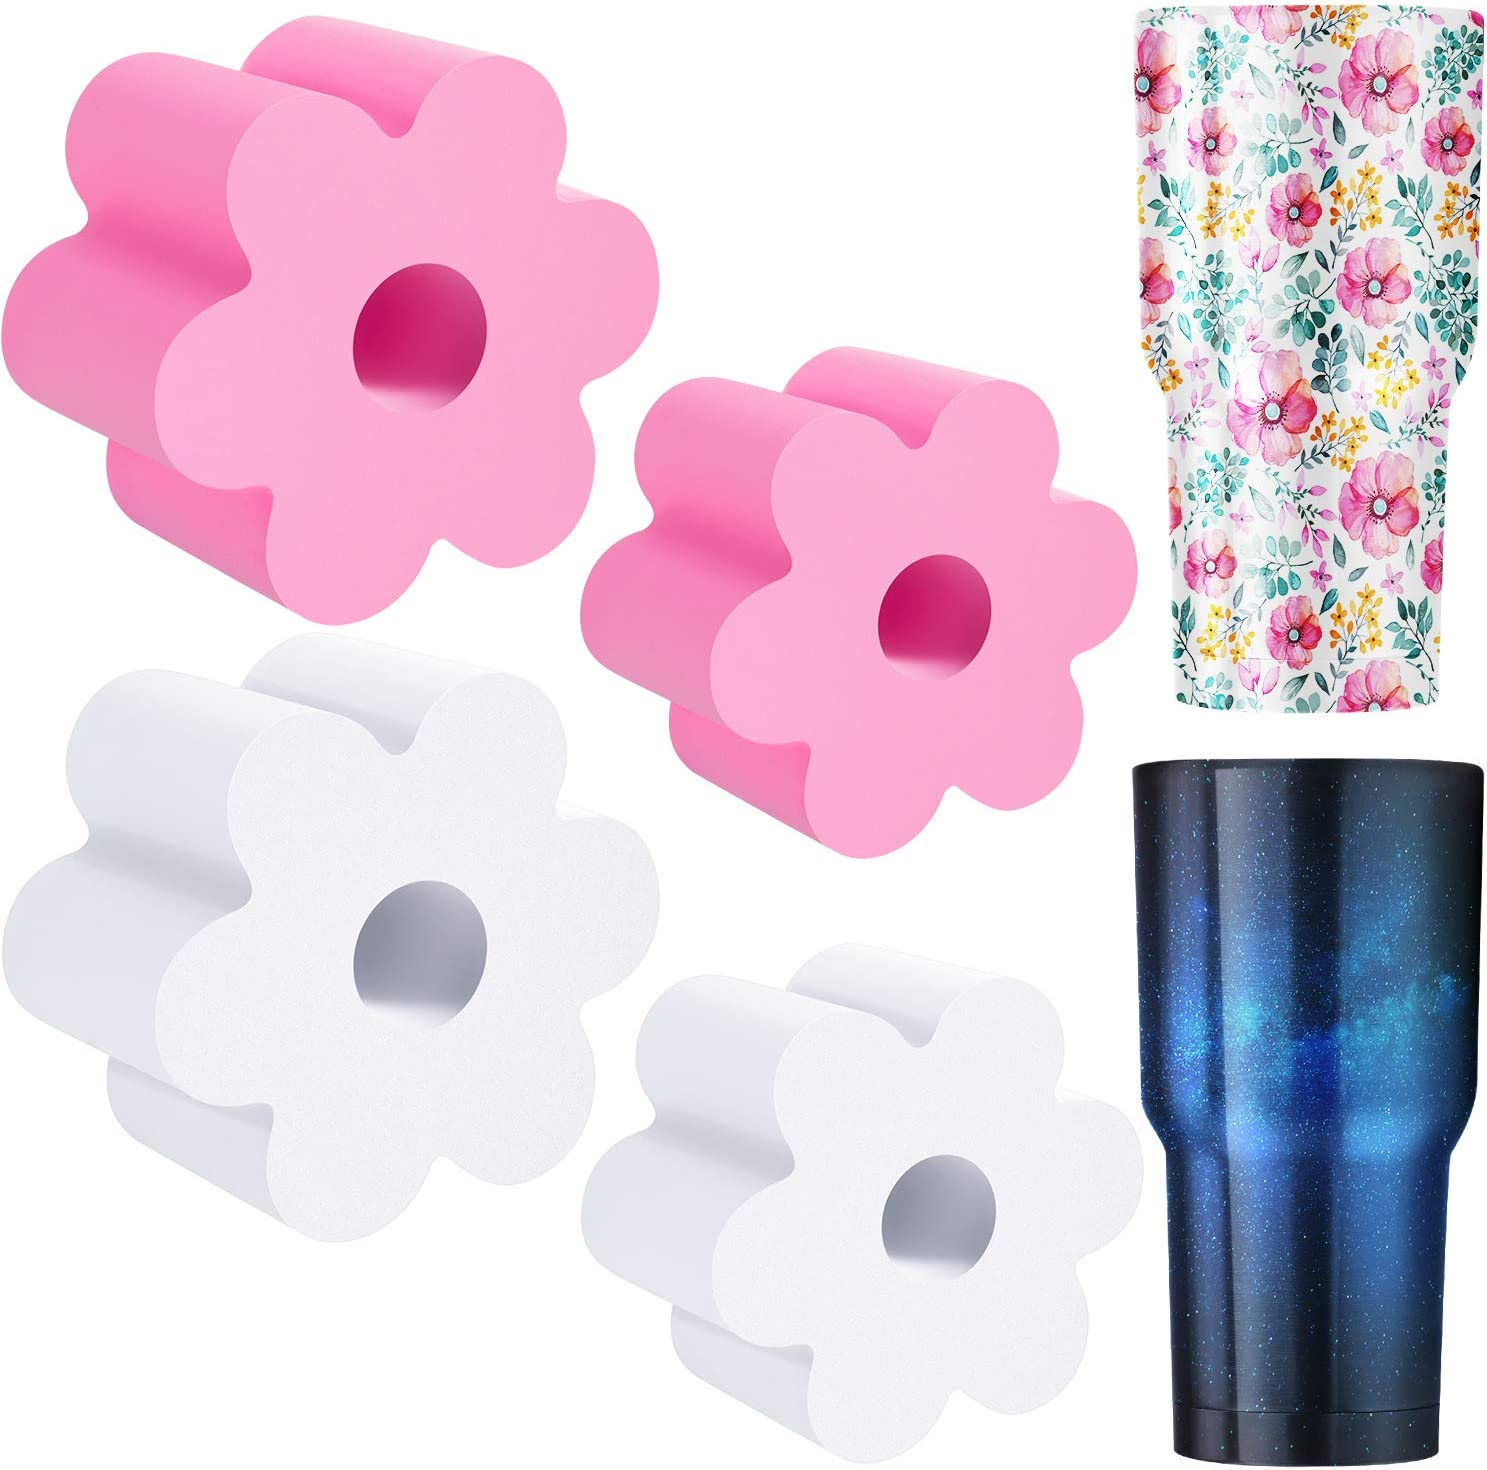 Black 8 Pieces Cup Turner Foam Tumbler Turner Foam Inserts Bottle Cup Turner Inserts Accessories 2.44//2.83//3.18//3.8 Inch Diameter for Tumblers Bottles Cups